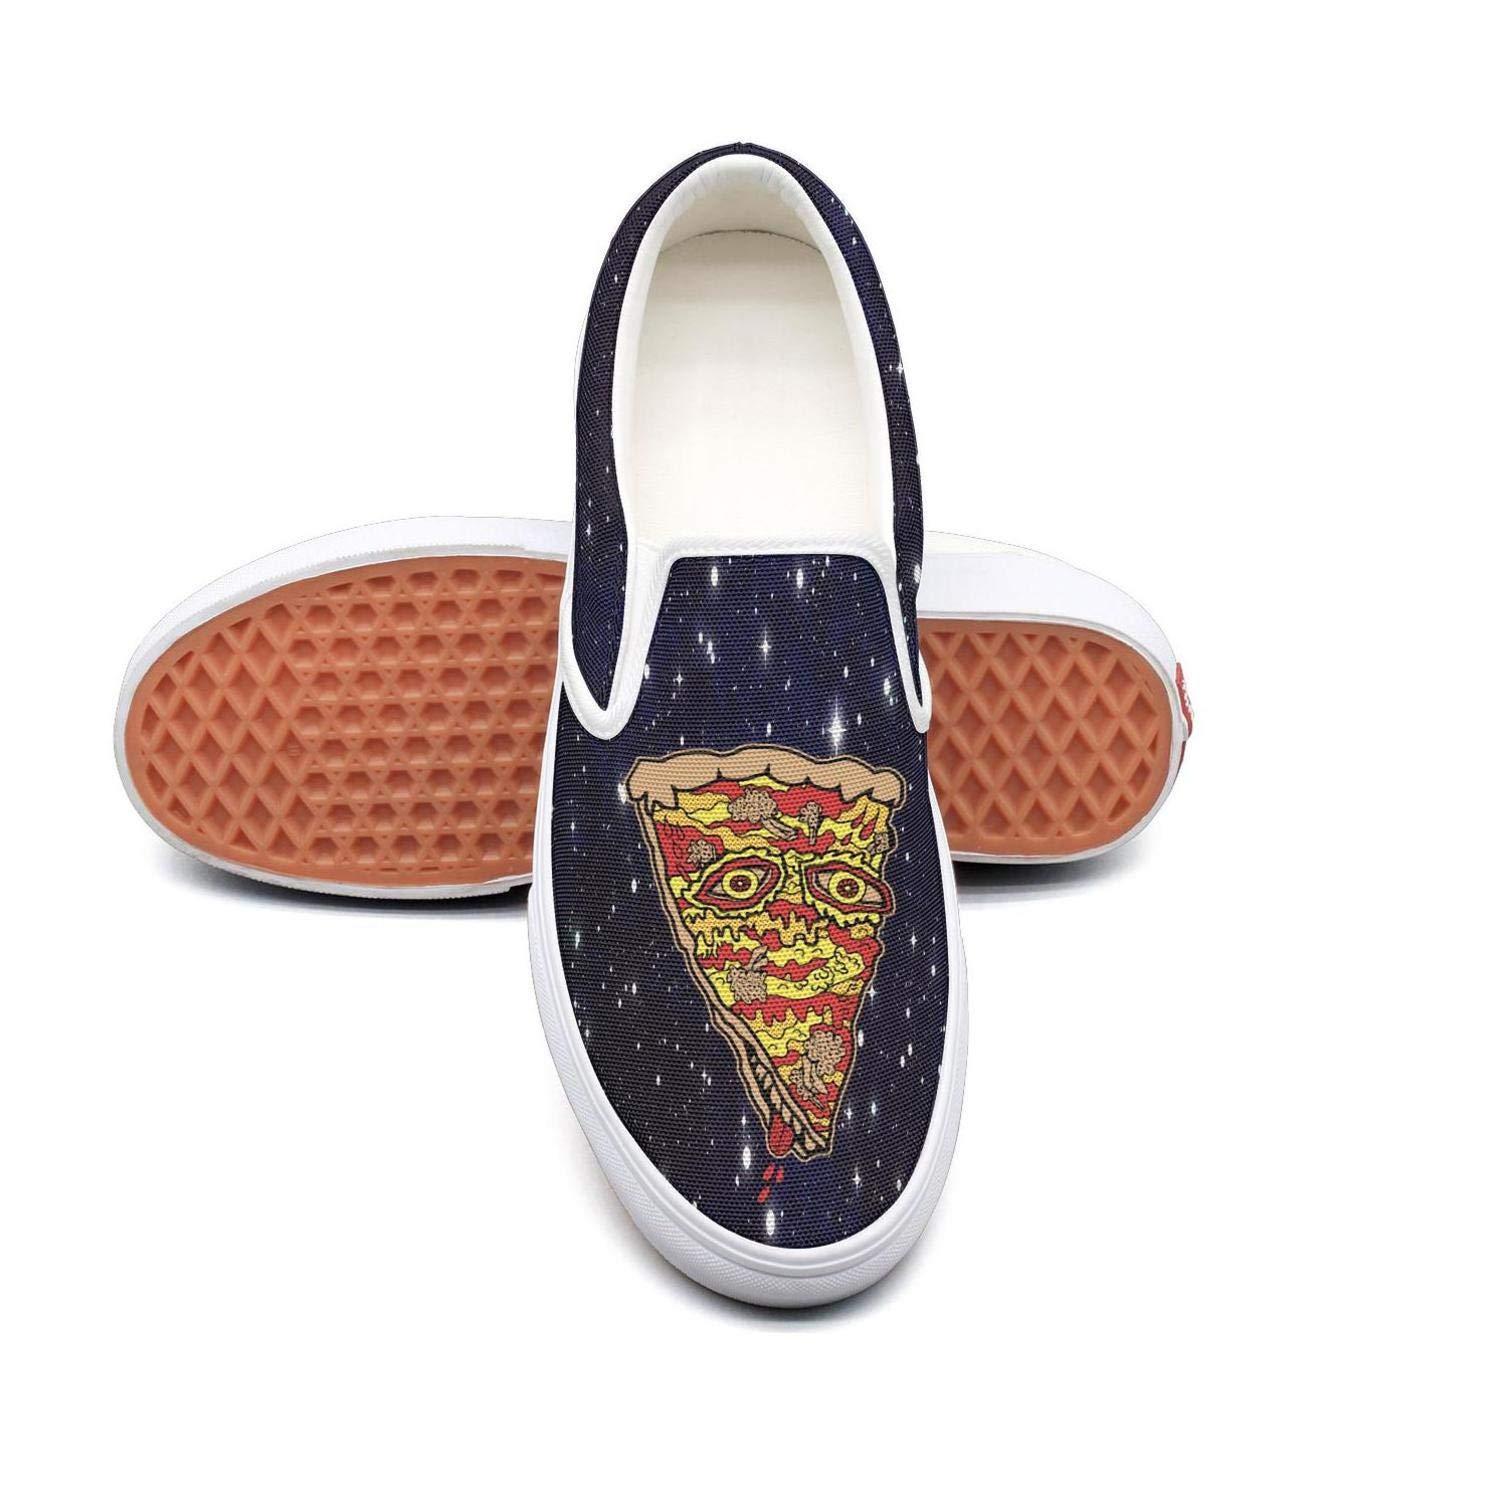 PPQQMM Art Woman Eating A Slice Of Pizza Womens Canvas Casual Skate Shoes Loafer